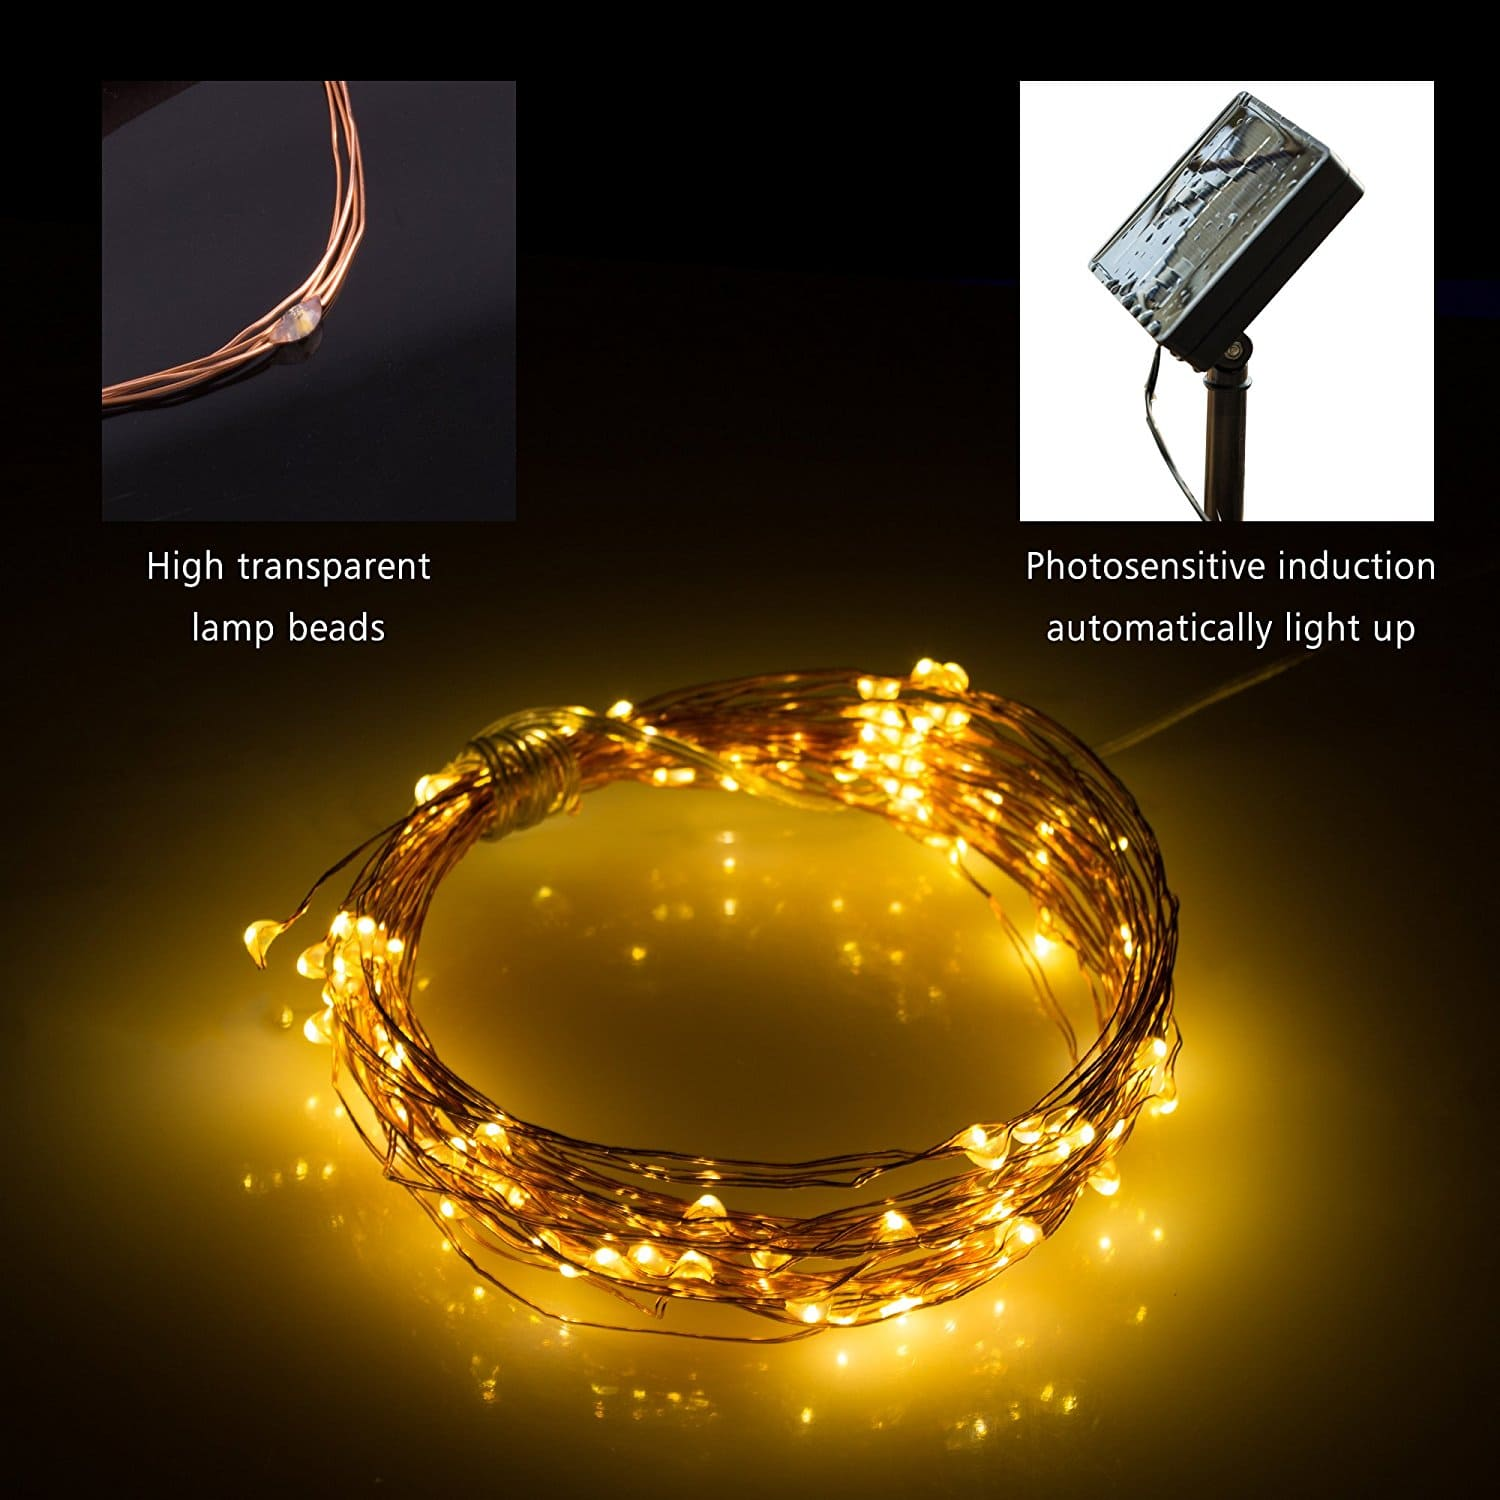 LED Solar String Lights – 39ft 8 Modes Bendable Solar Powered Copper Wire Starry Lights FS w/ Prime $7.00